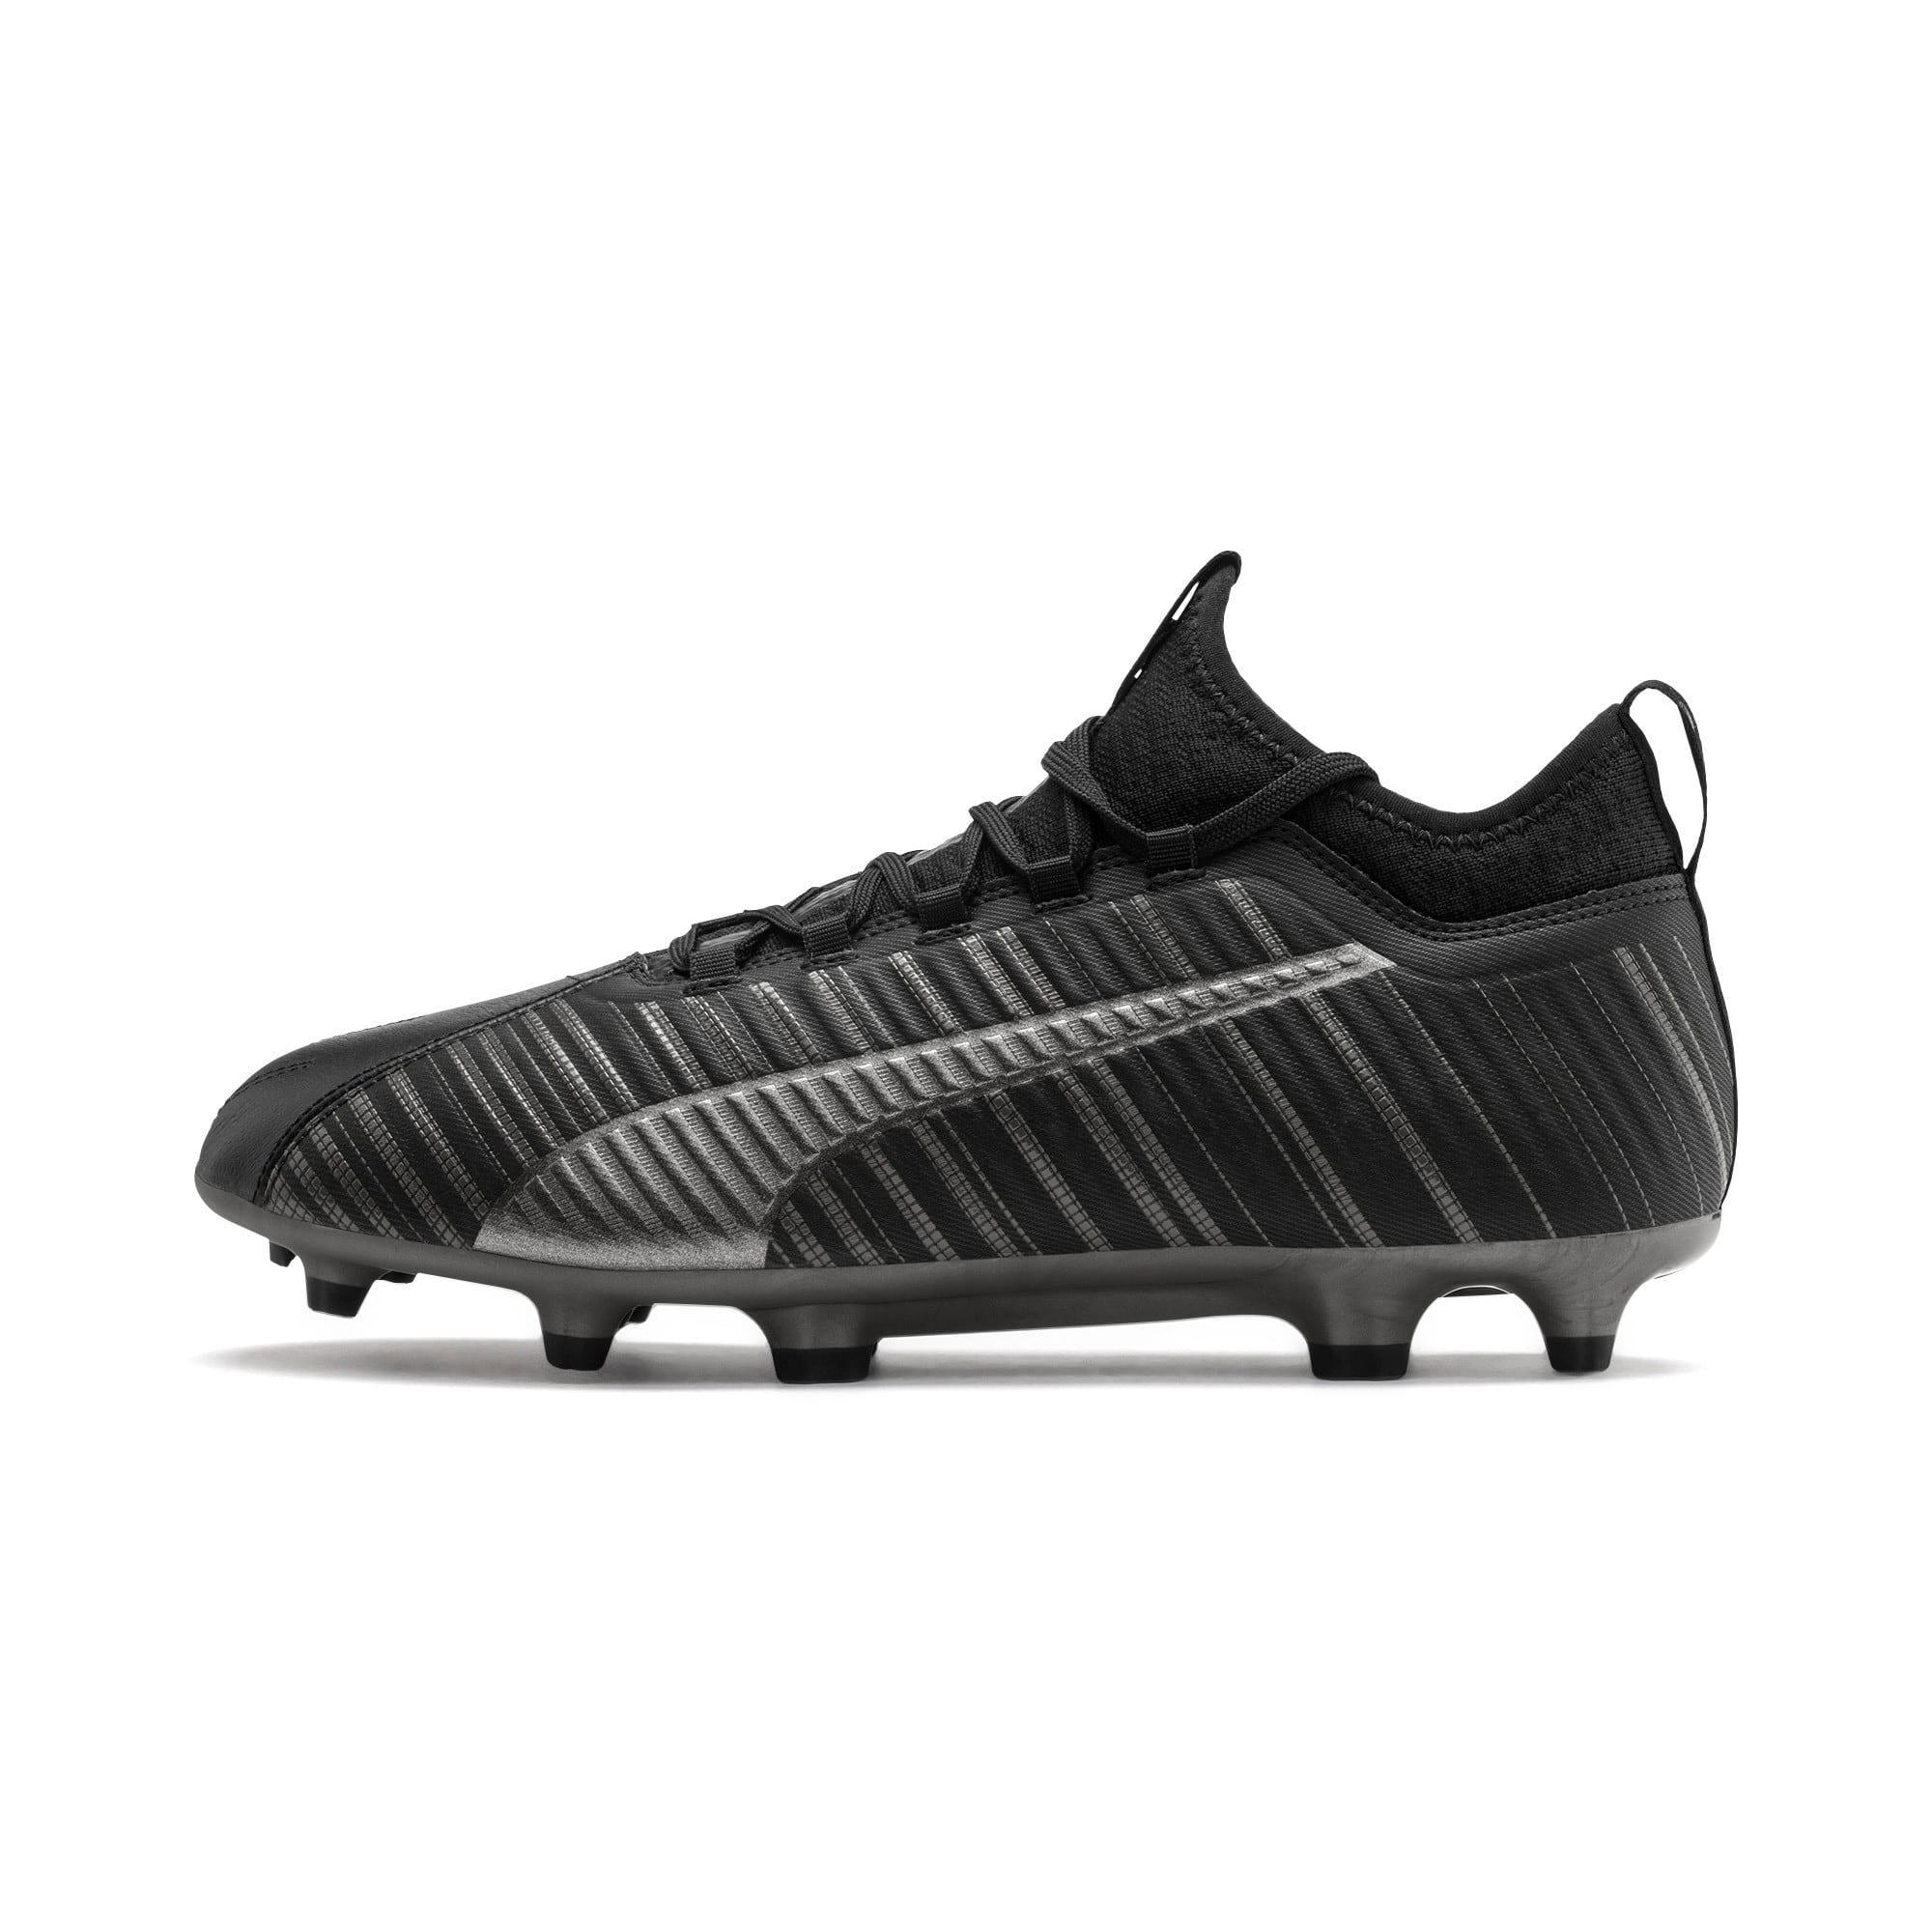 Thumbnail 1 of PUMA ONE 5.3 FG/AG Men's Football Boots, Black-Black-Puma Aged Silver, medium